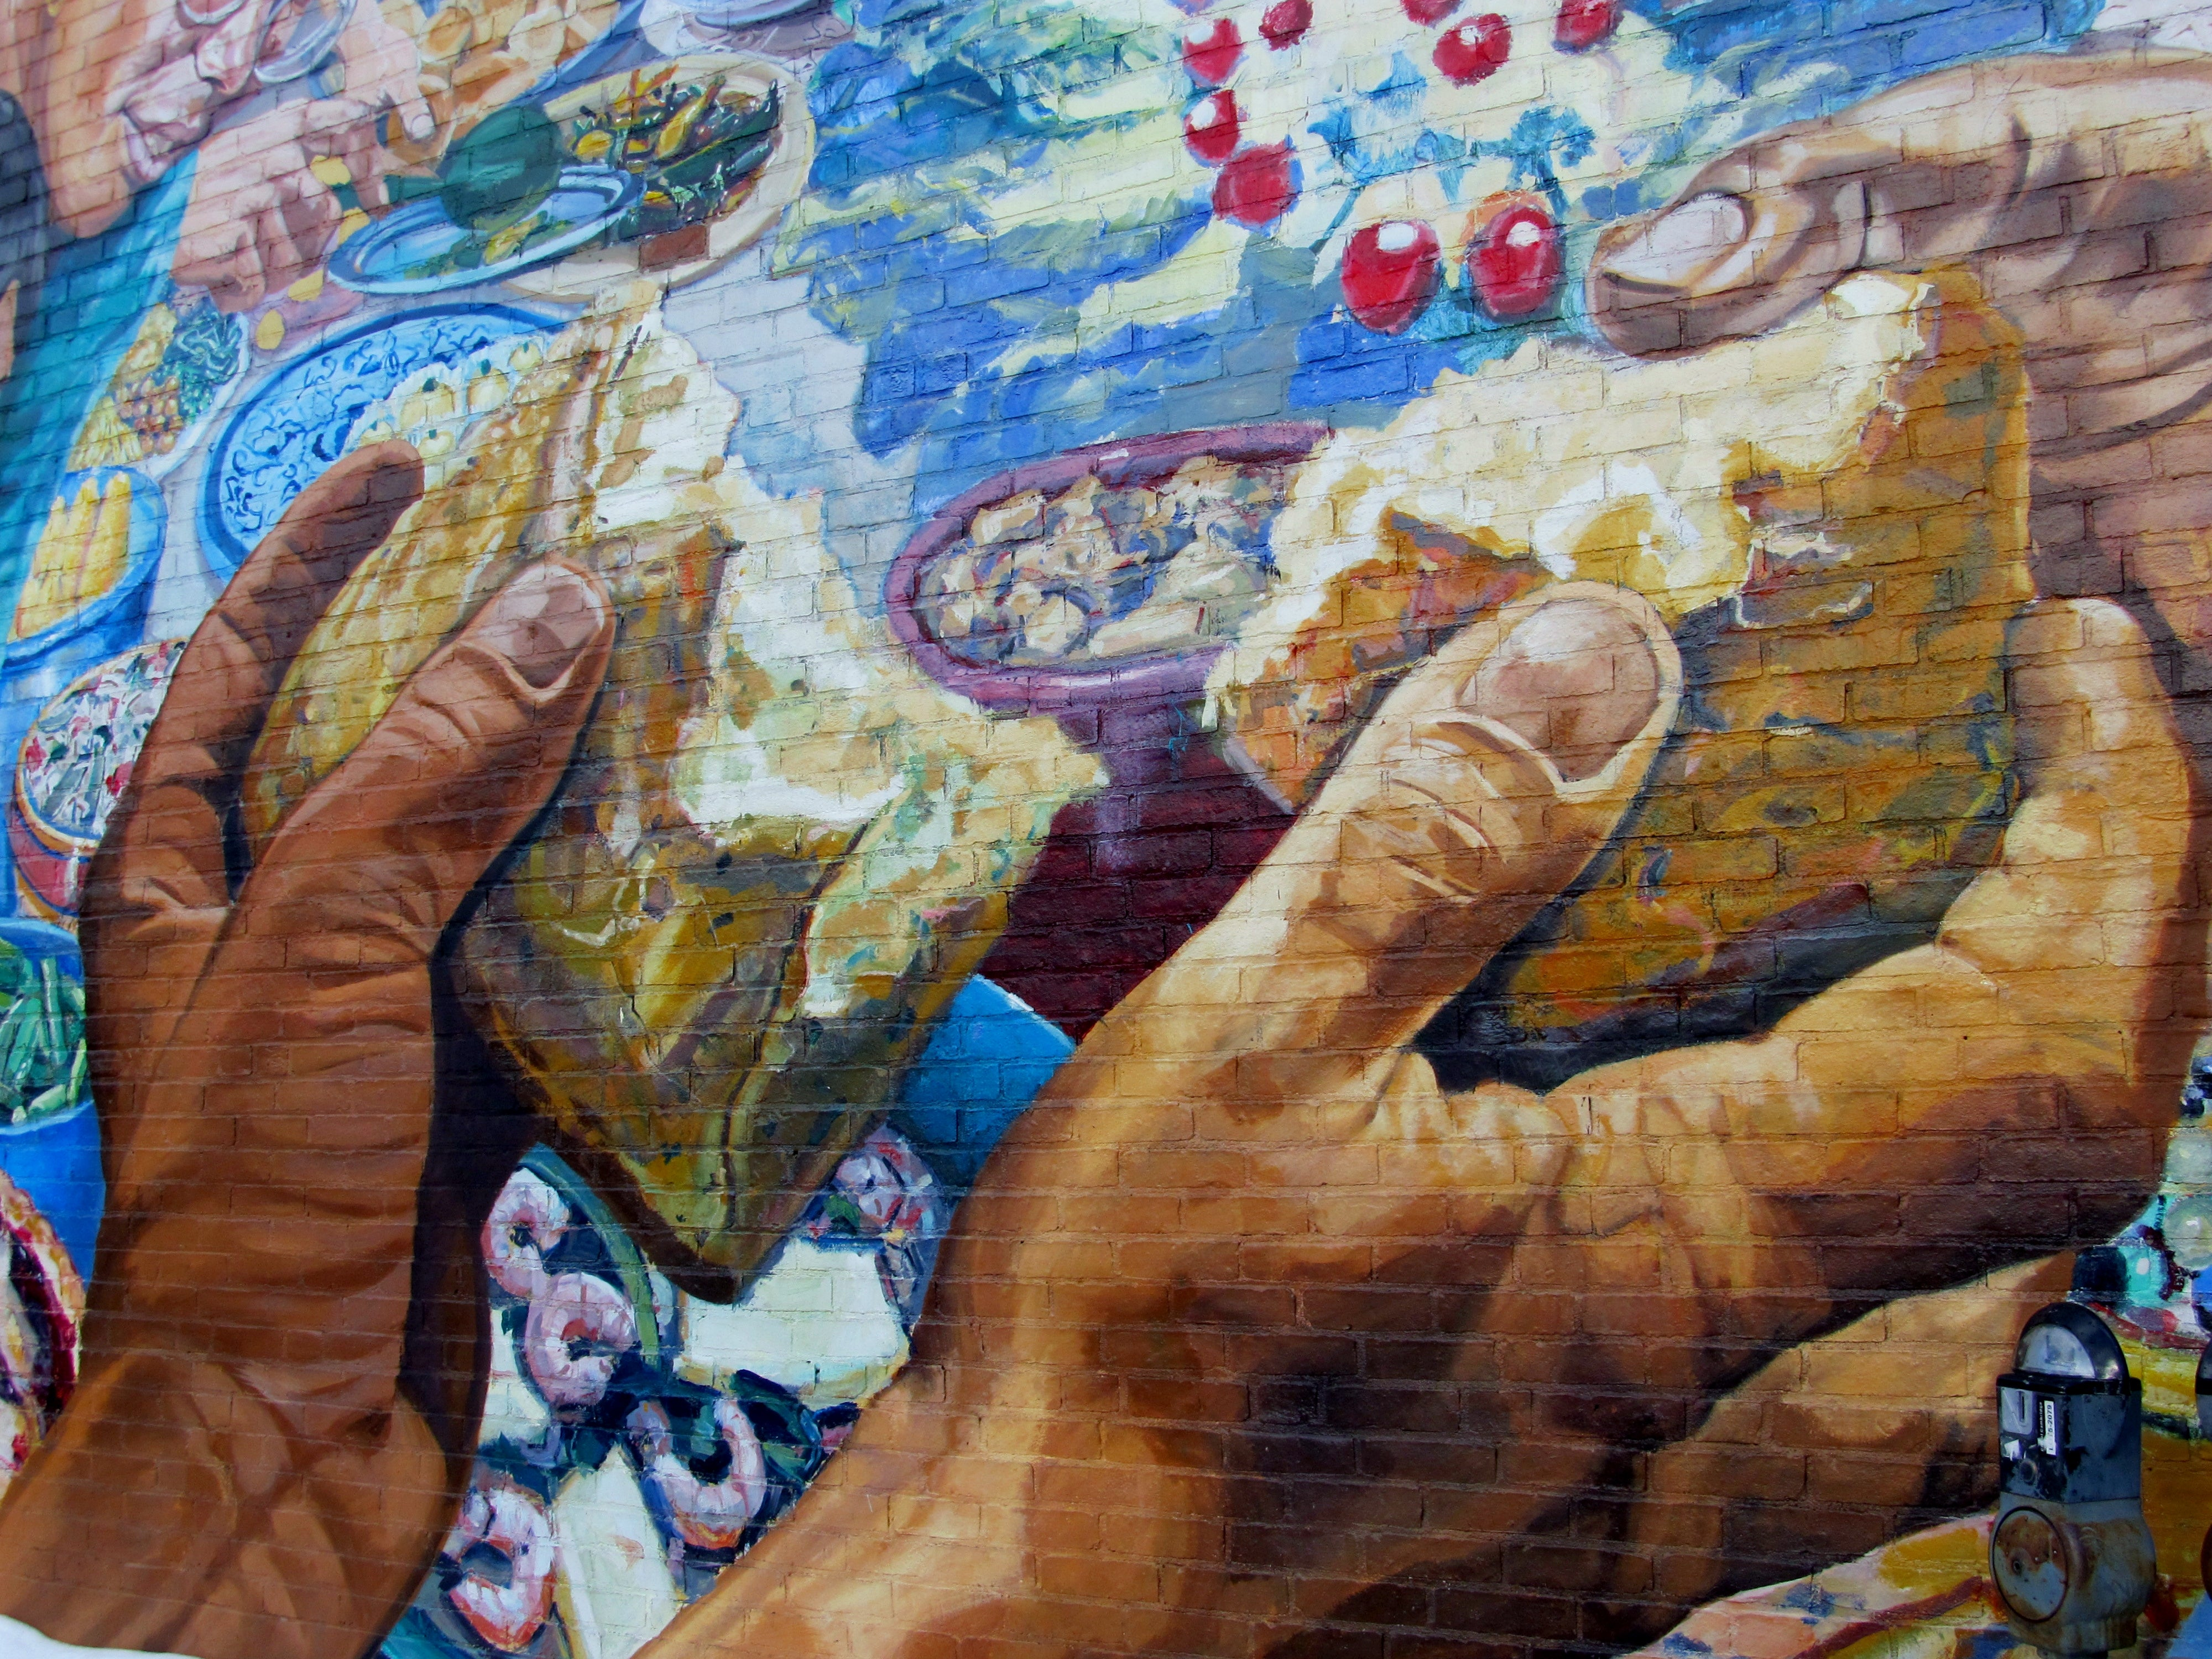 Breaking Bread - Mural by David Fitcher, Photo by Lorianne di Sabato